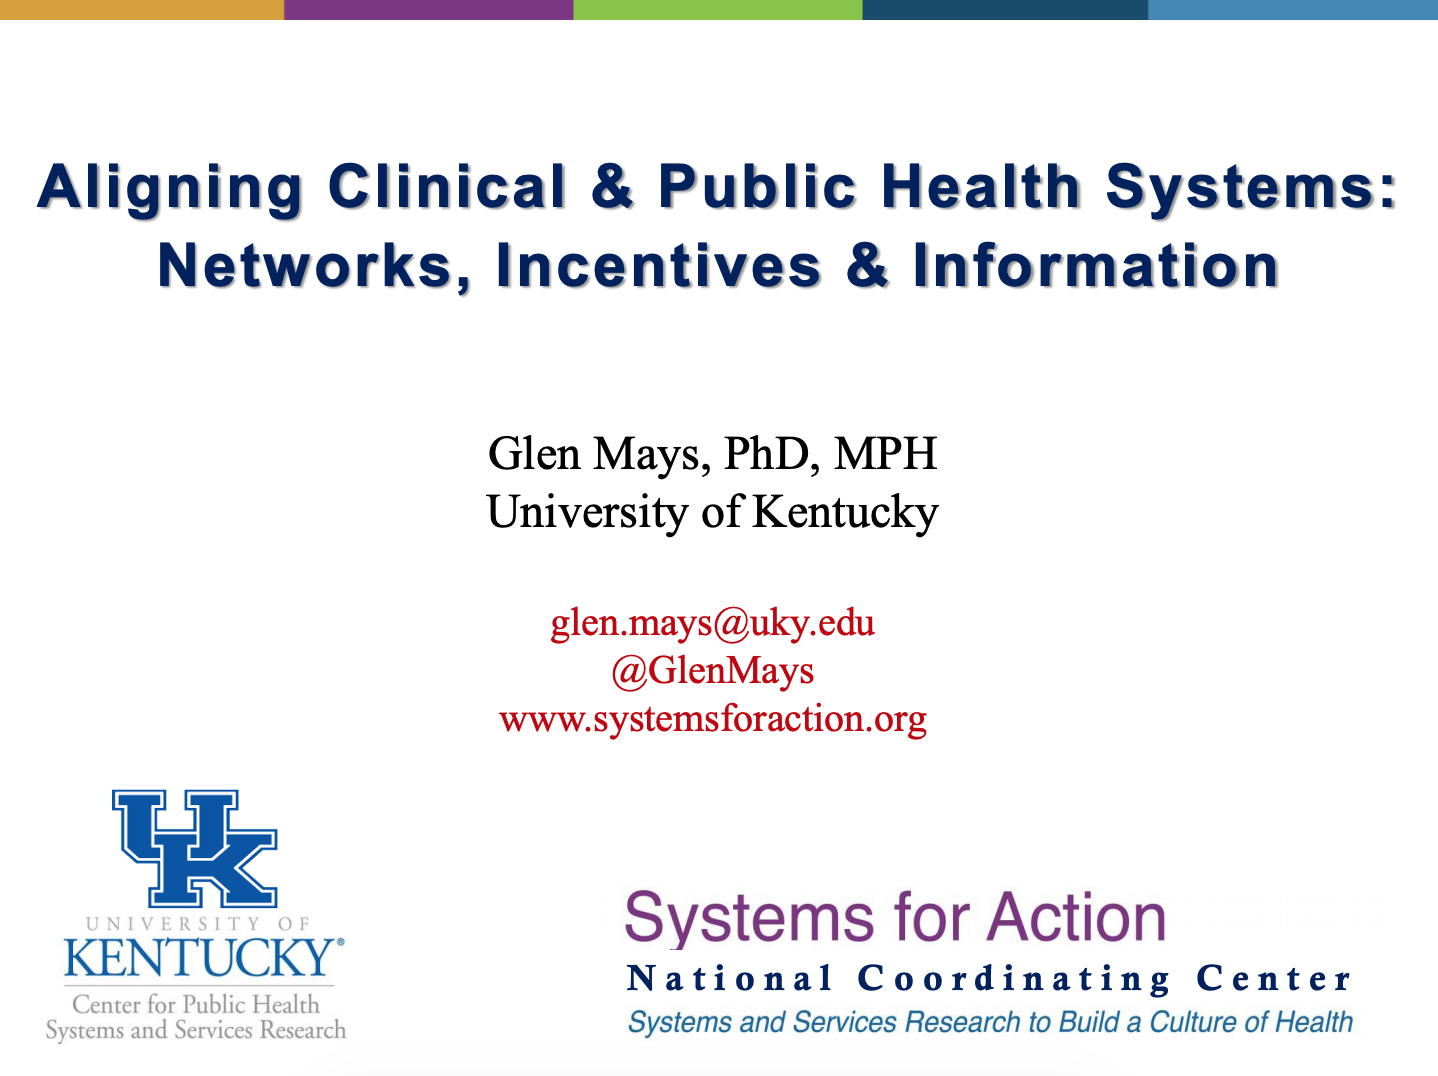 Aligning Clinical & Public Health Systems: Networks, Incentives & Information